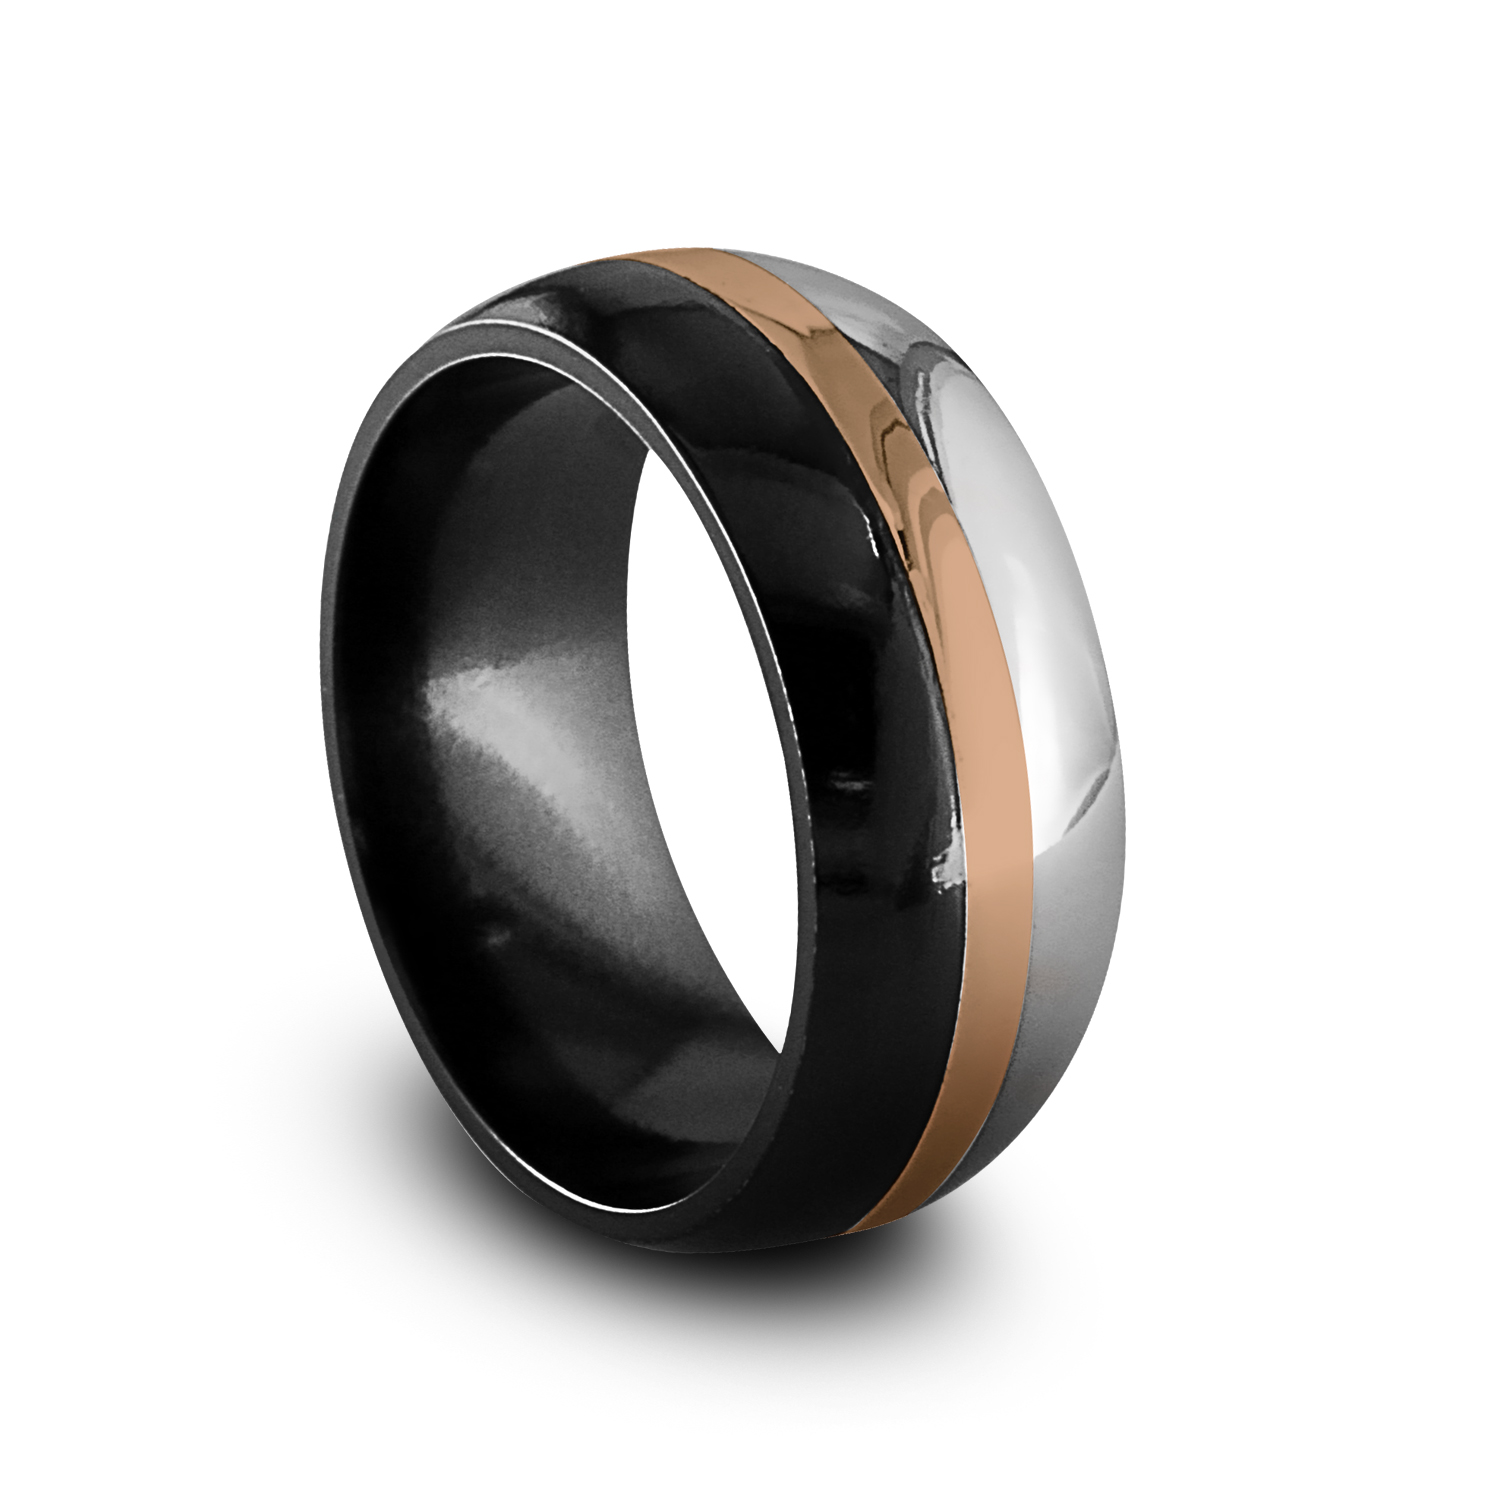 mens wide jewelry rings edward mirell black casted l titanium signet trade ring top ti mm